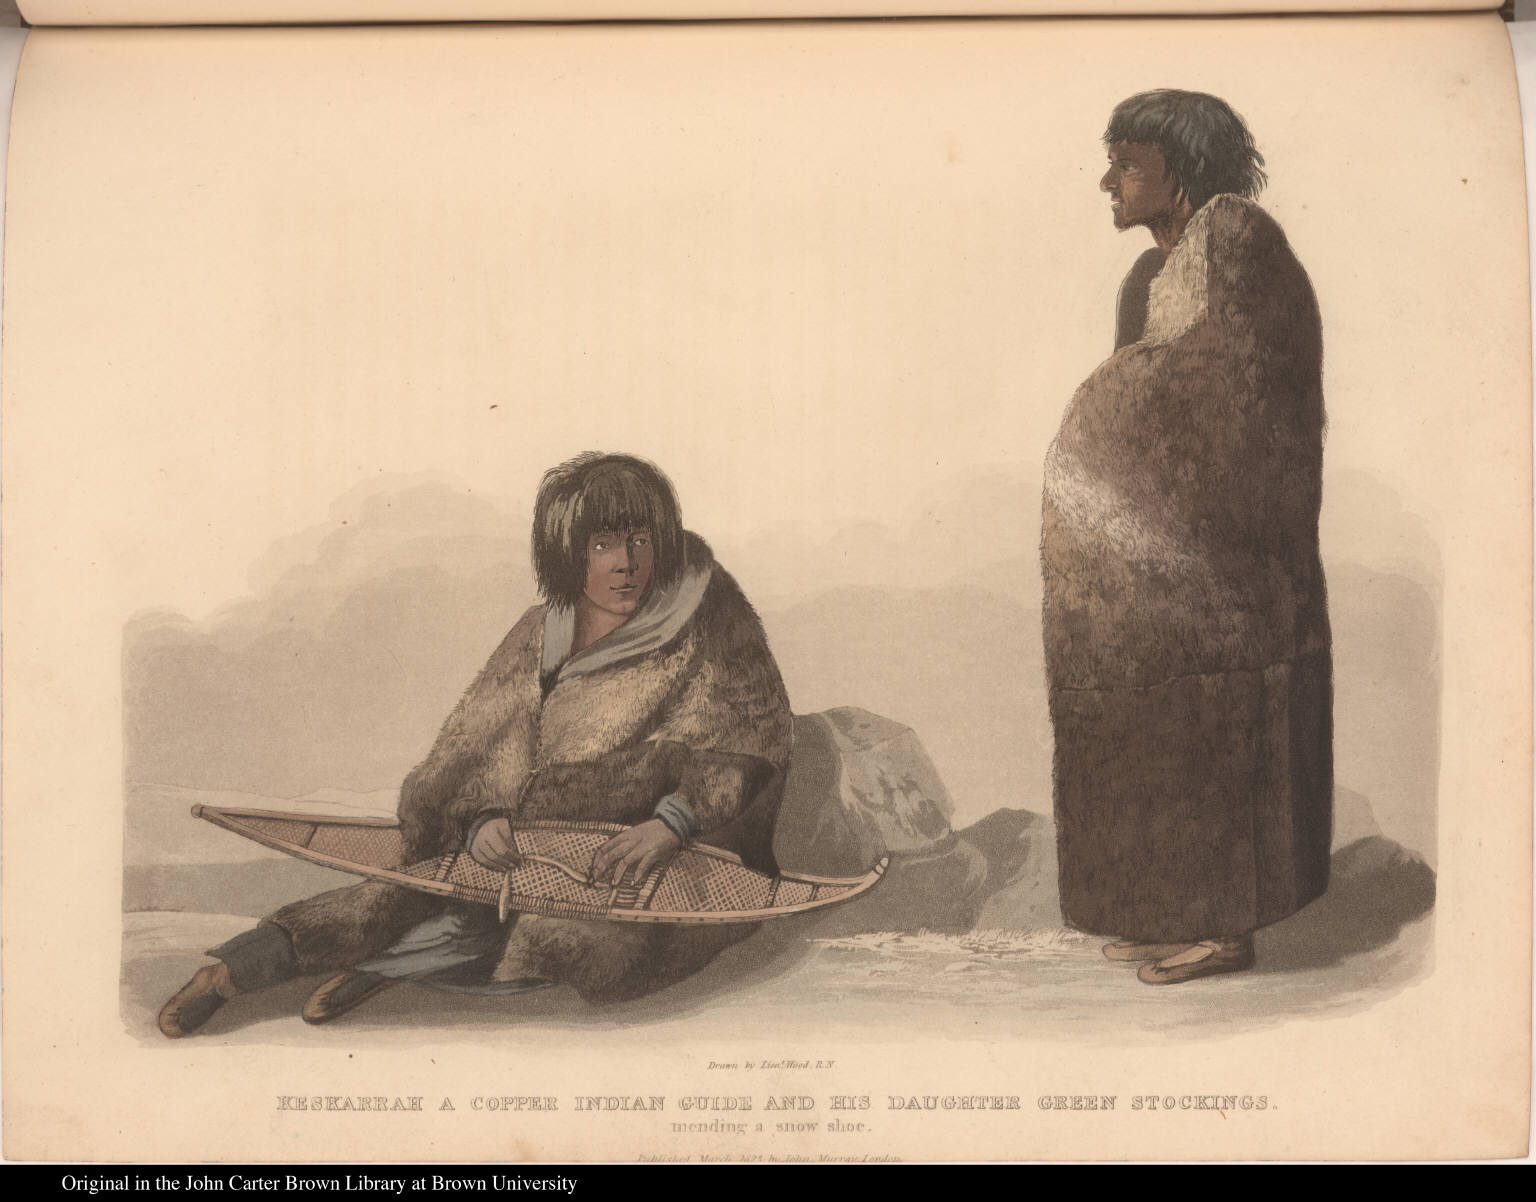 Keskarrah a Copper Indian Guide and his Daughter Green Stockings. mending a snow shoe.